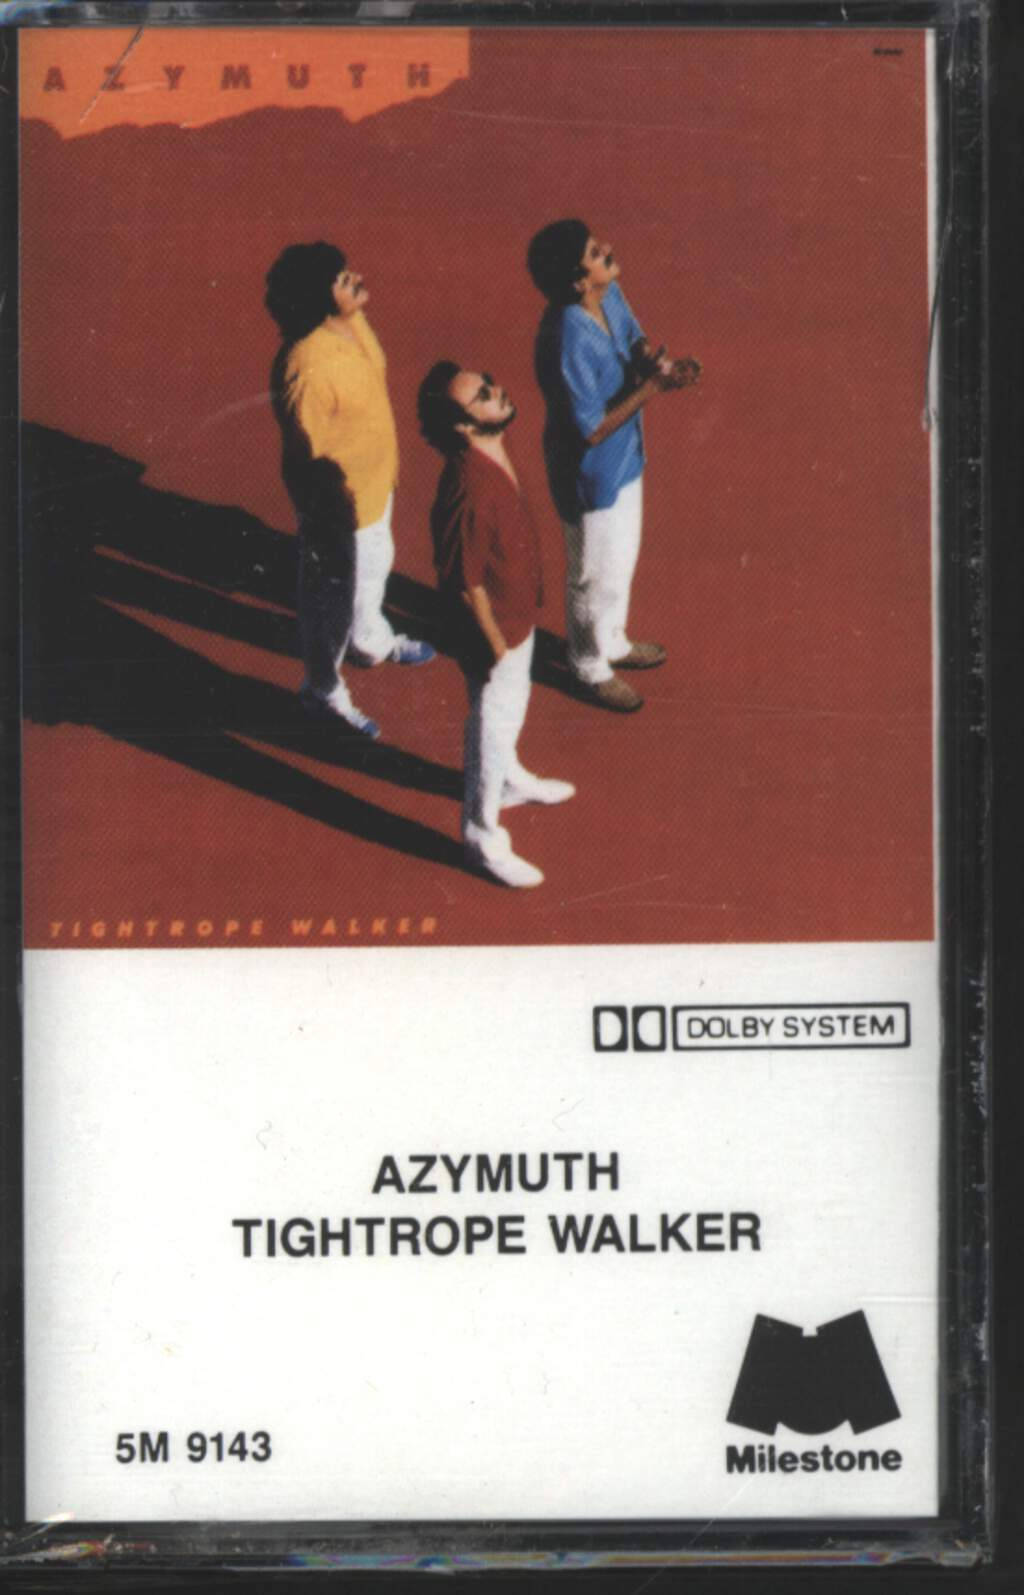 Azymuth: Tightrope Walker, Tape